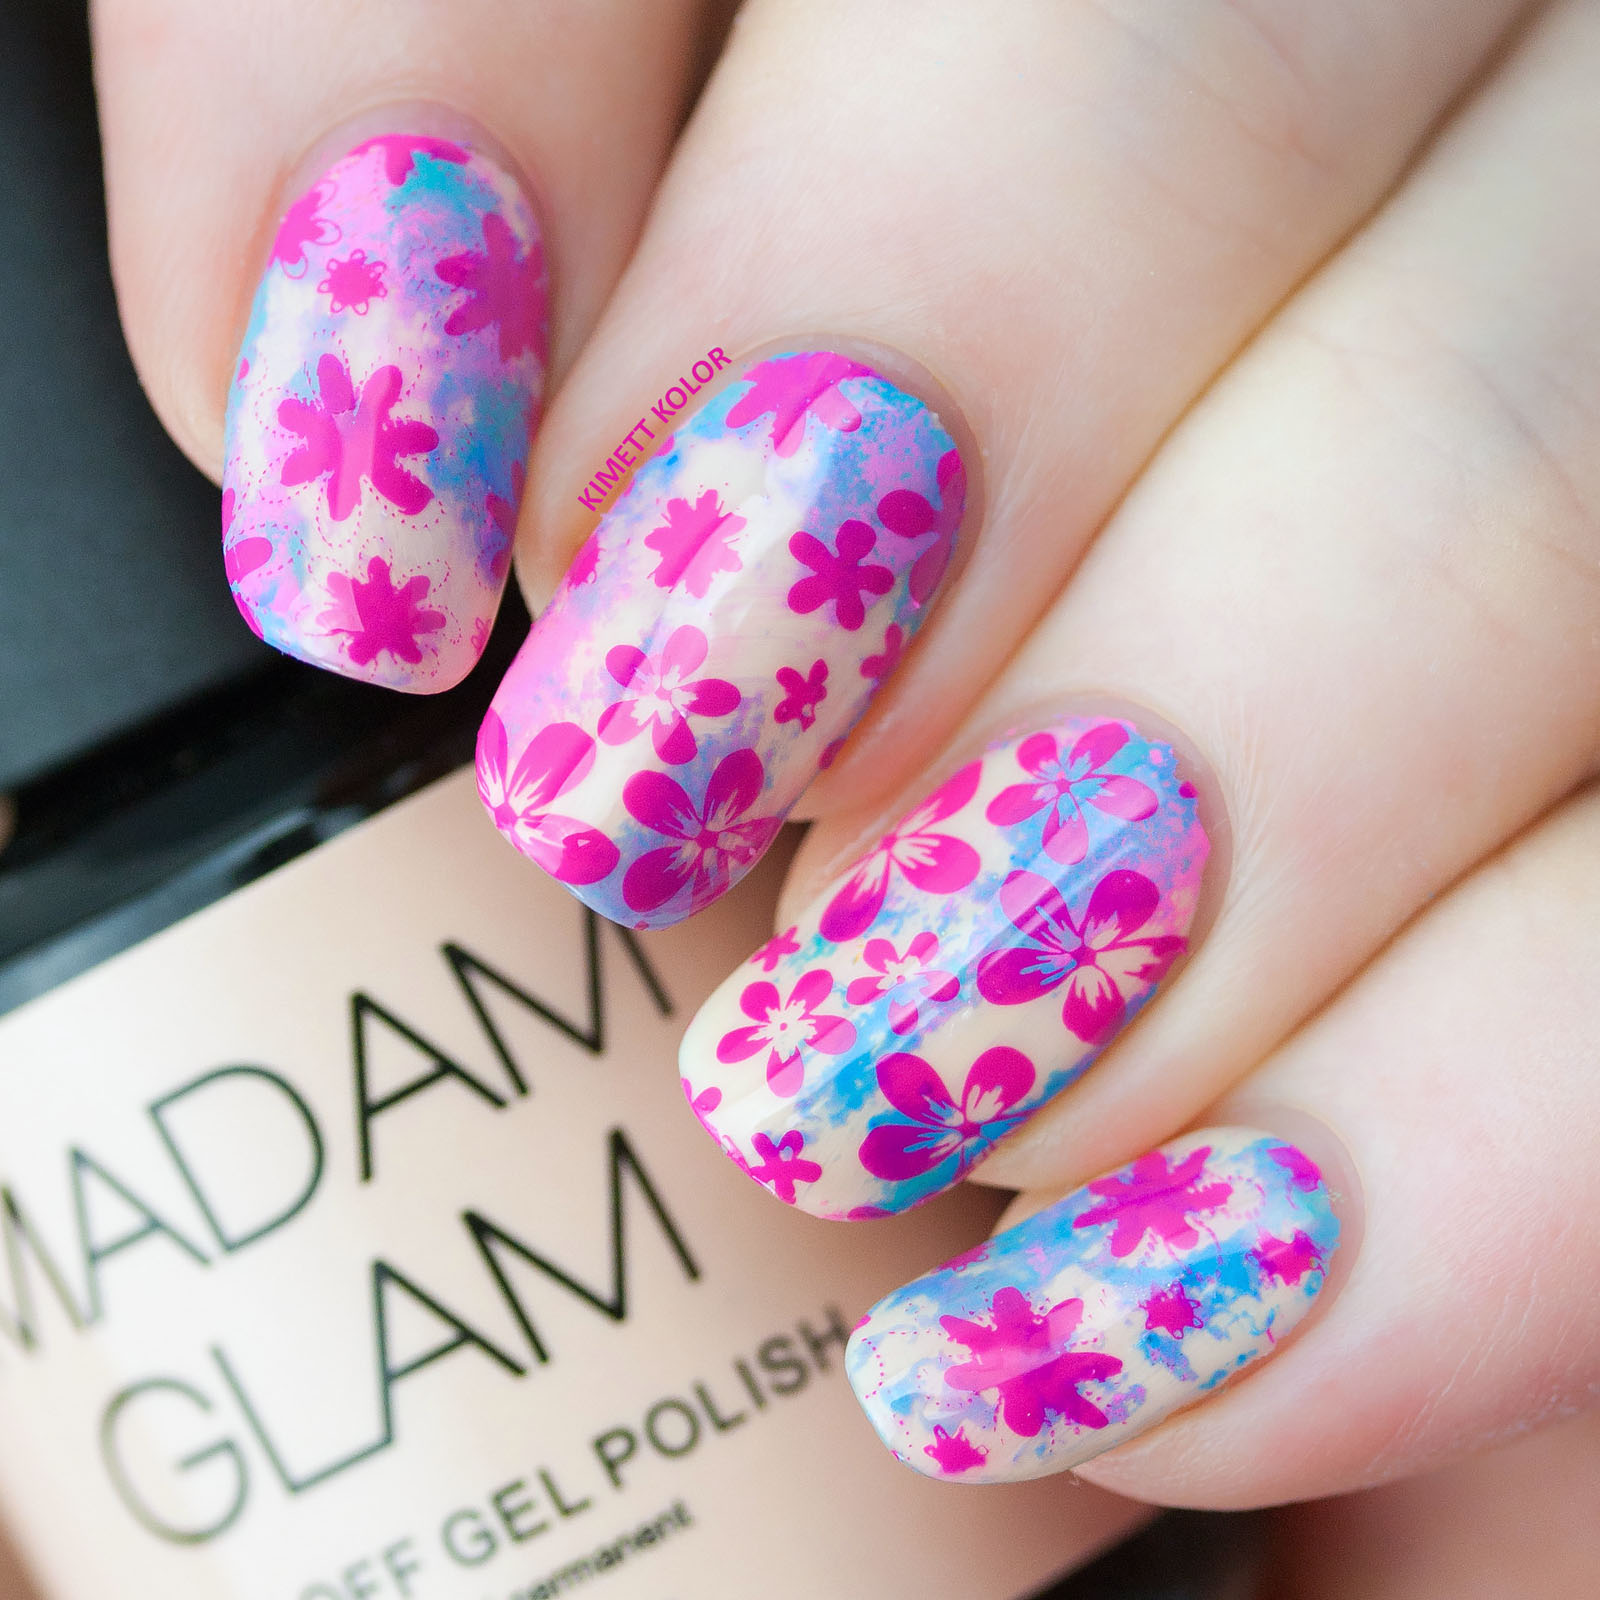 Kimett Kolor stamping nail art over Madam Glam cafe au lait